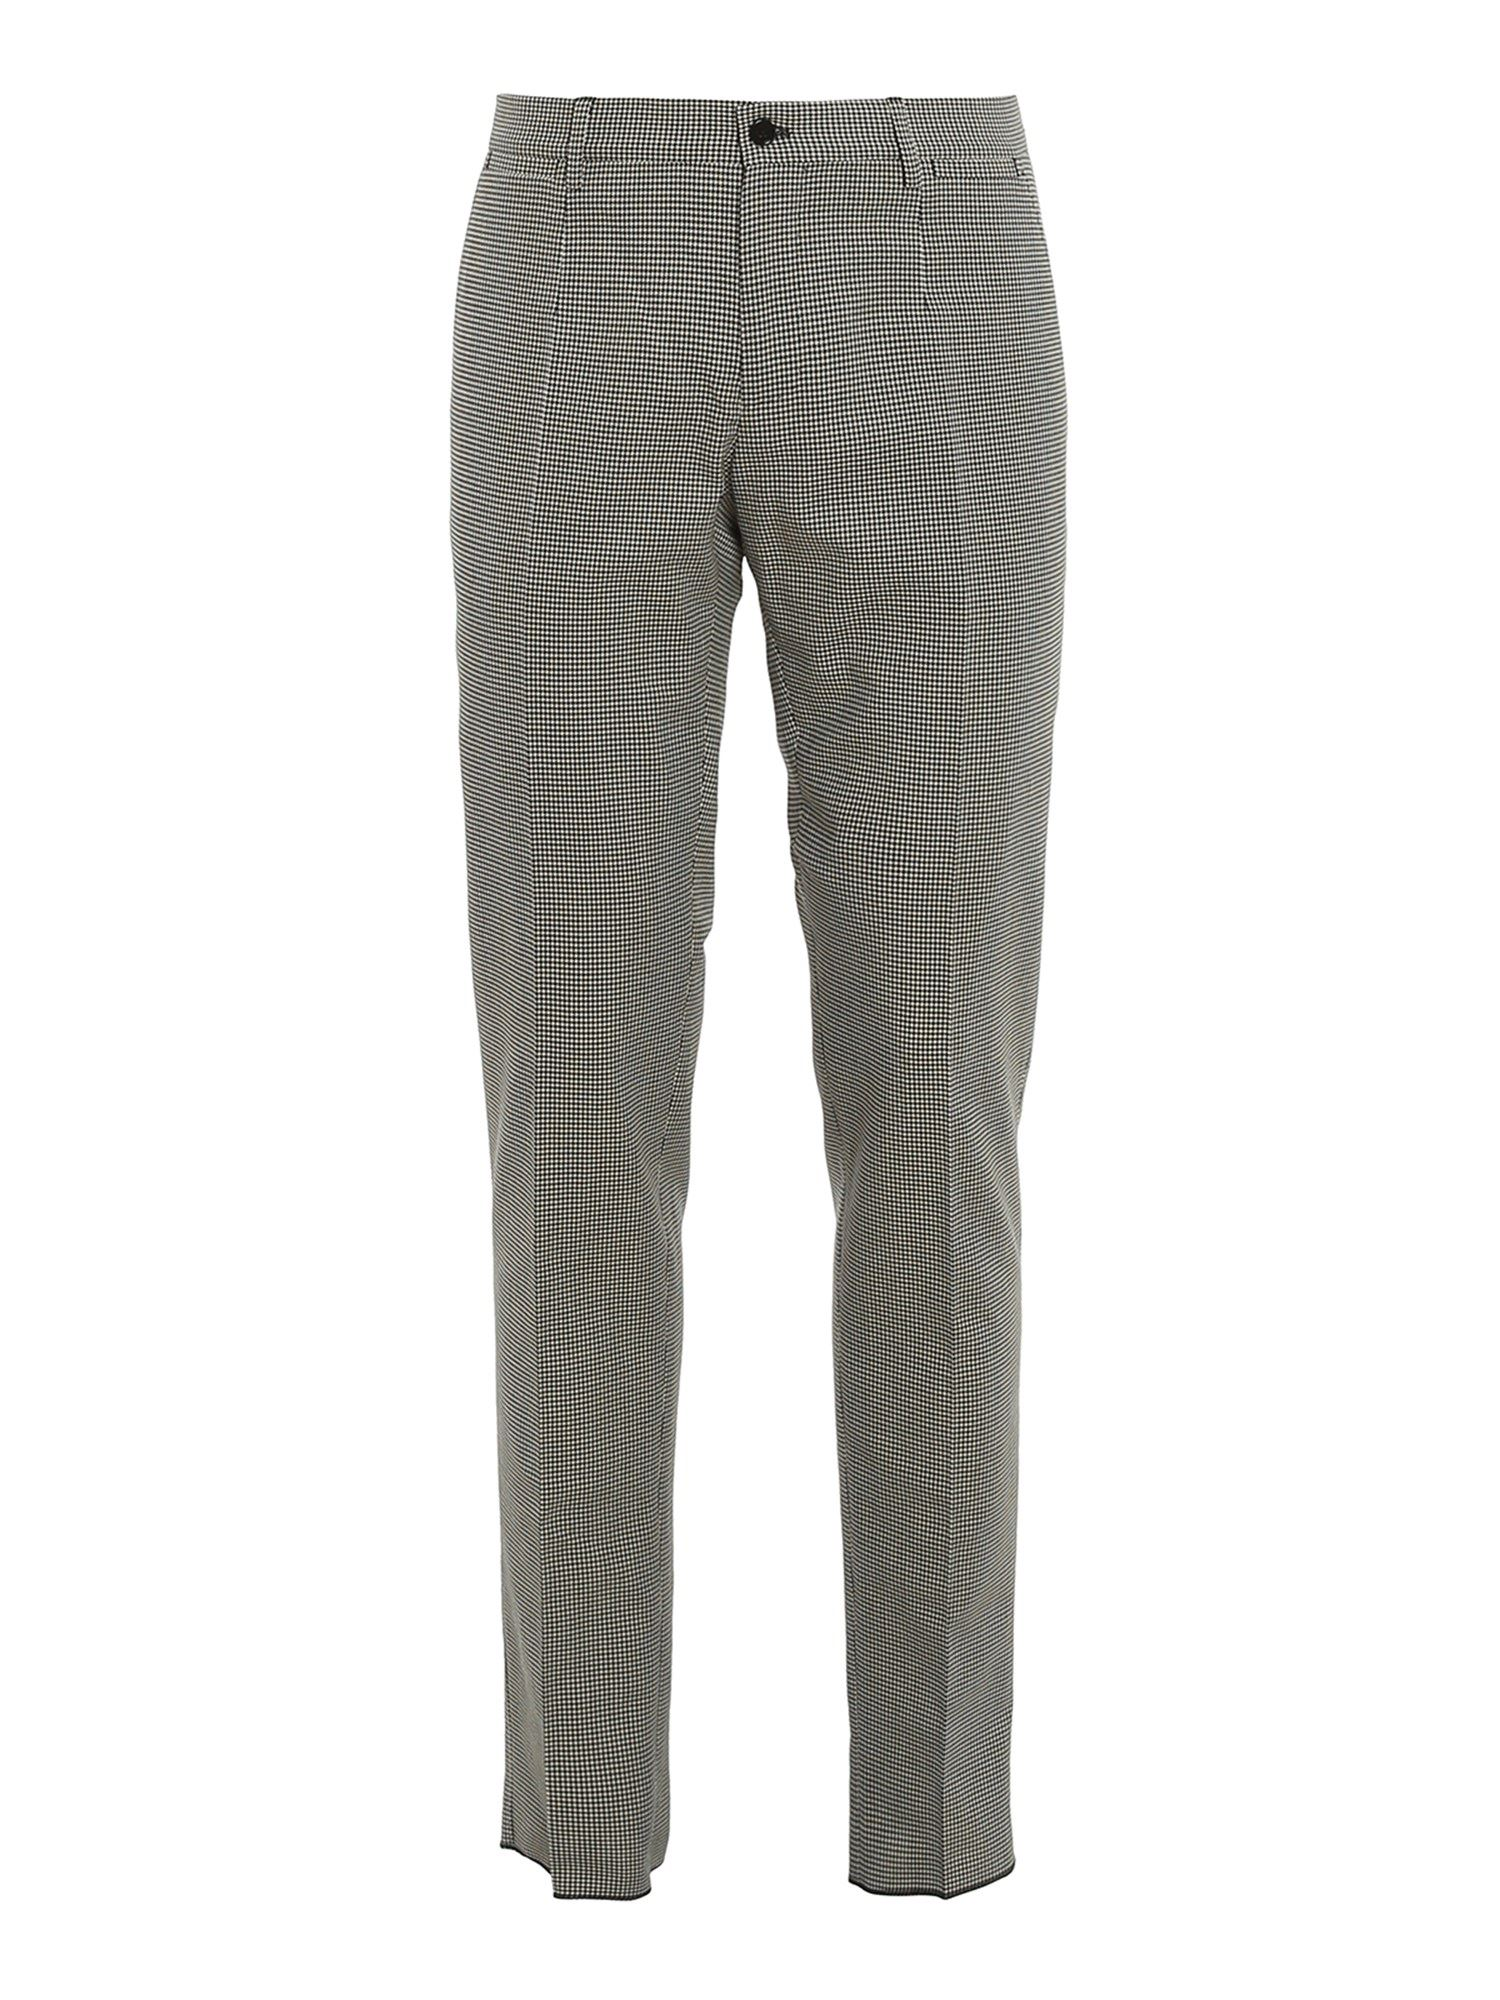 Dolce & Gabbana Cottons HOUNDSTOOTH PATTERNED PANTS IN BLACK AND WHITE